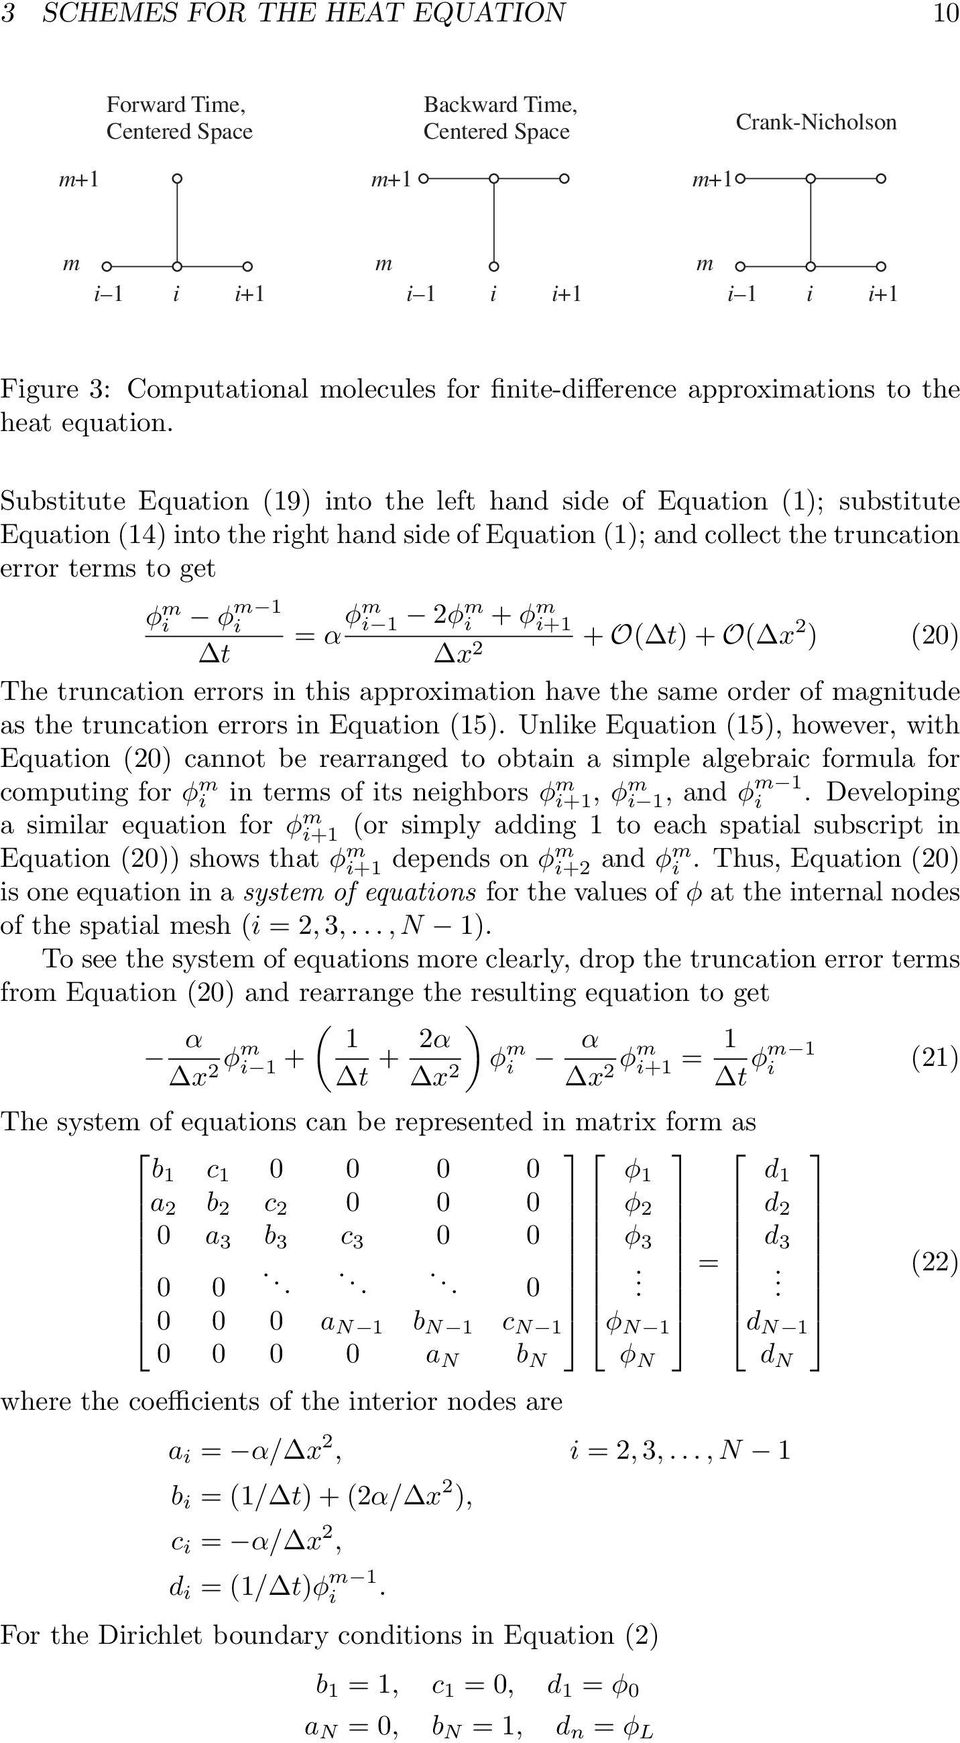 Finite-Difference Approximations to the Heat Equation - PDF